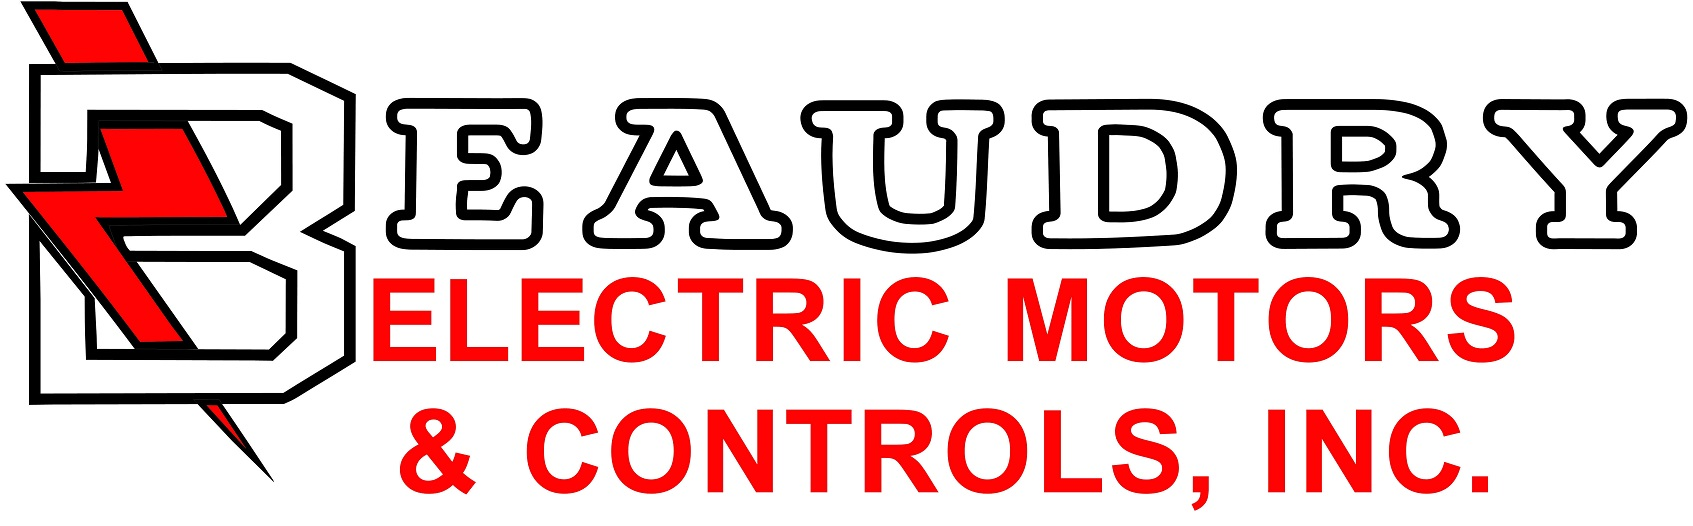 Beaudry Electric Motors Logo